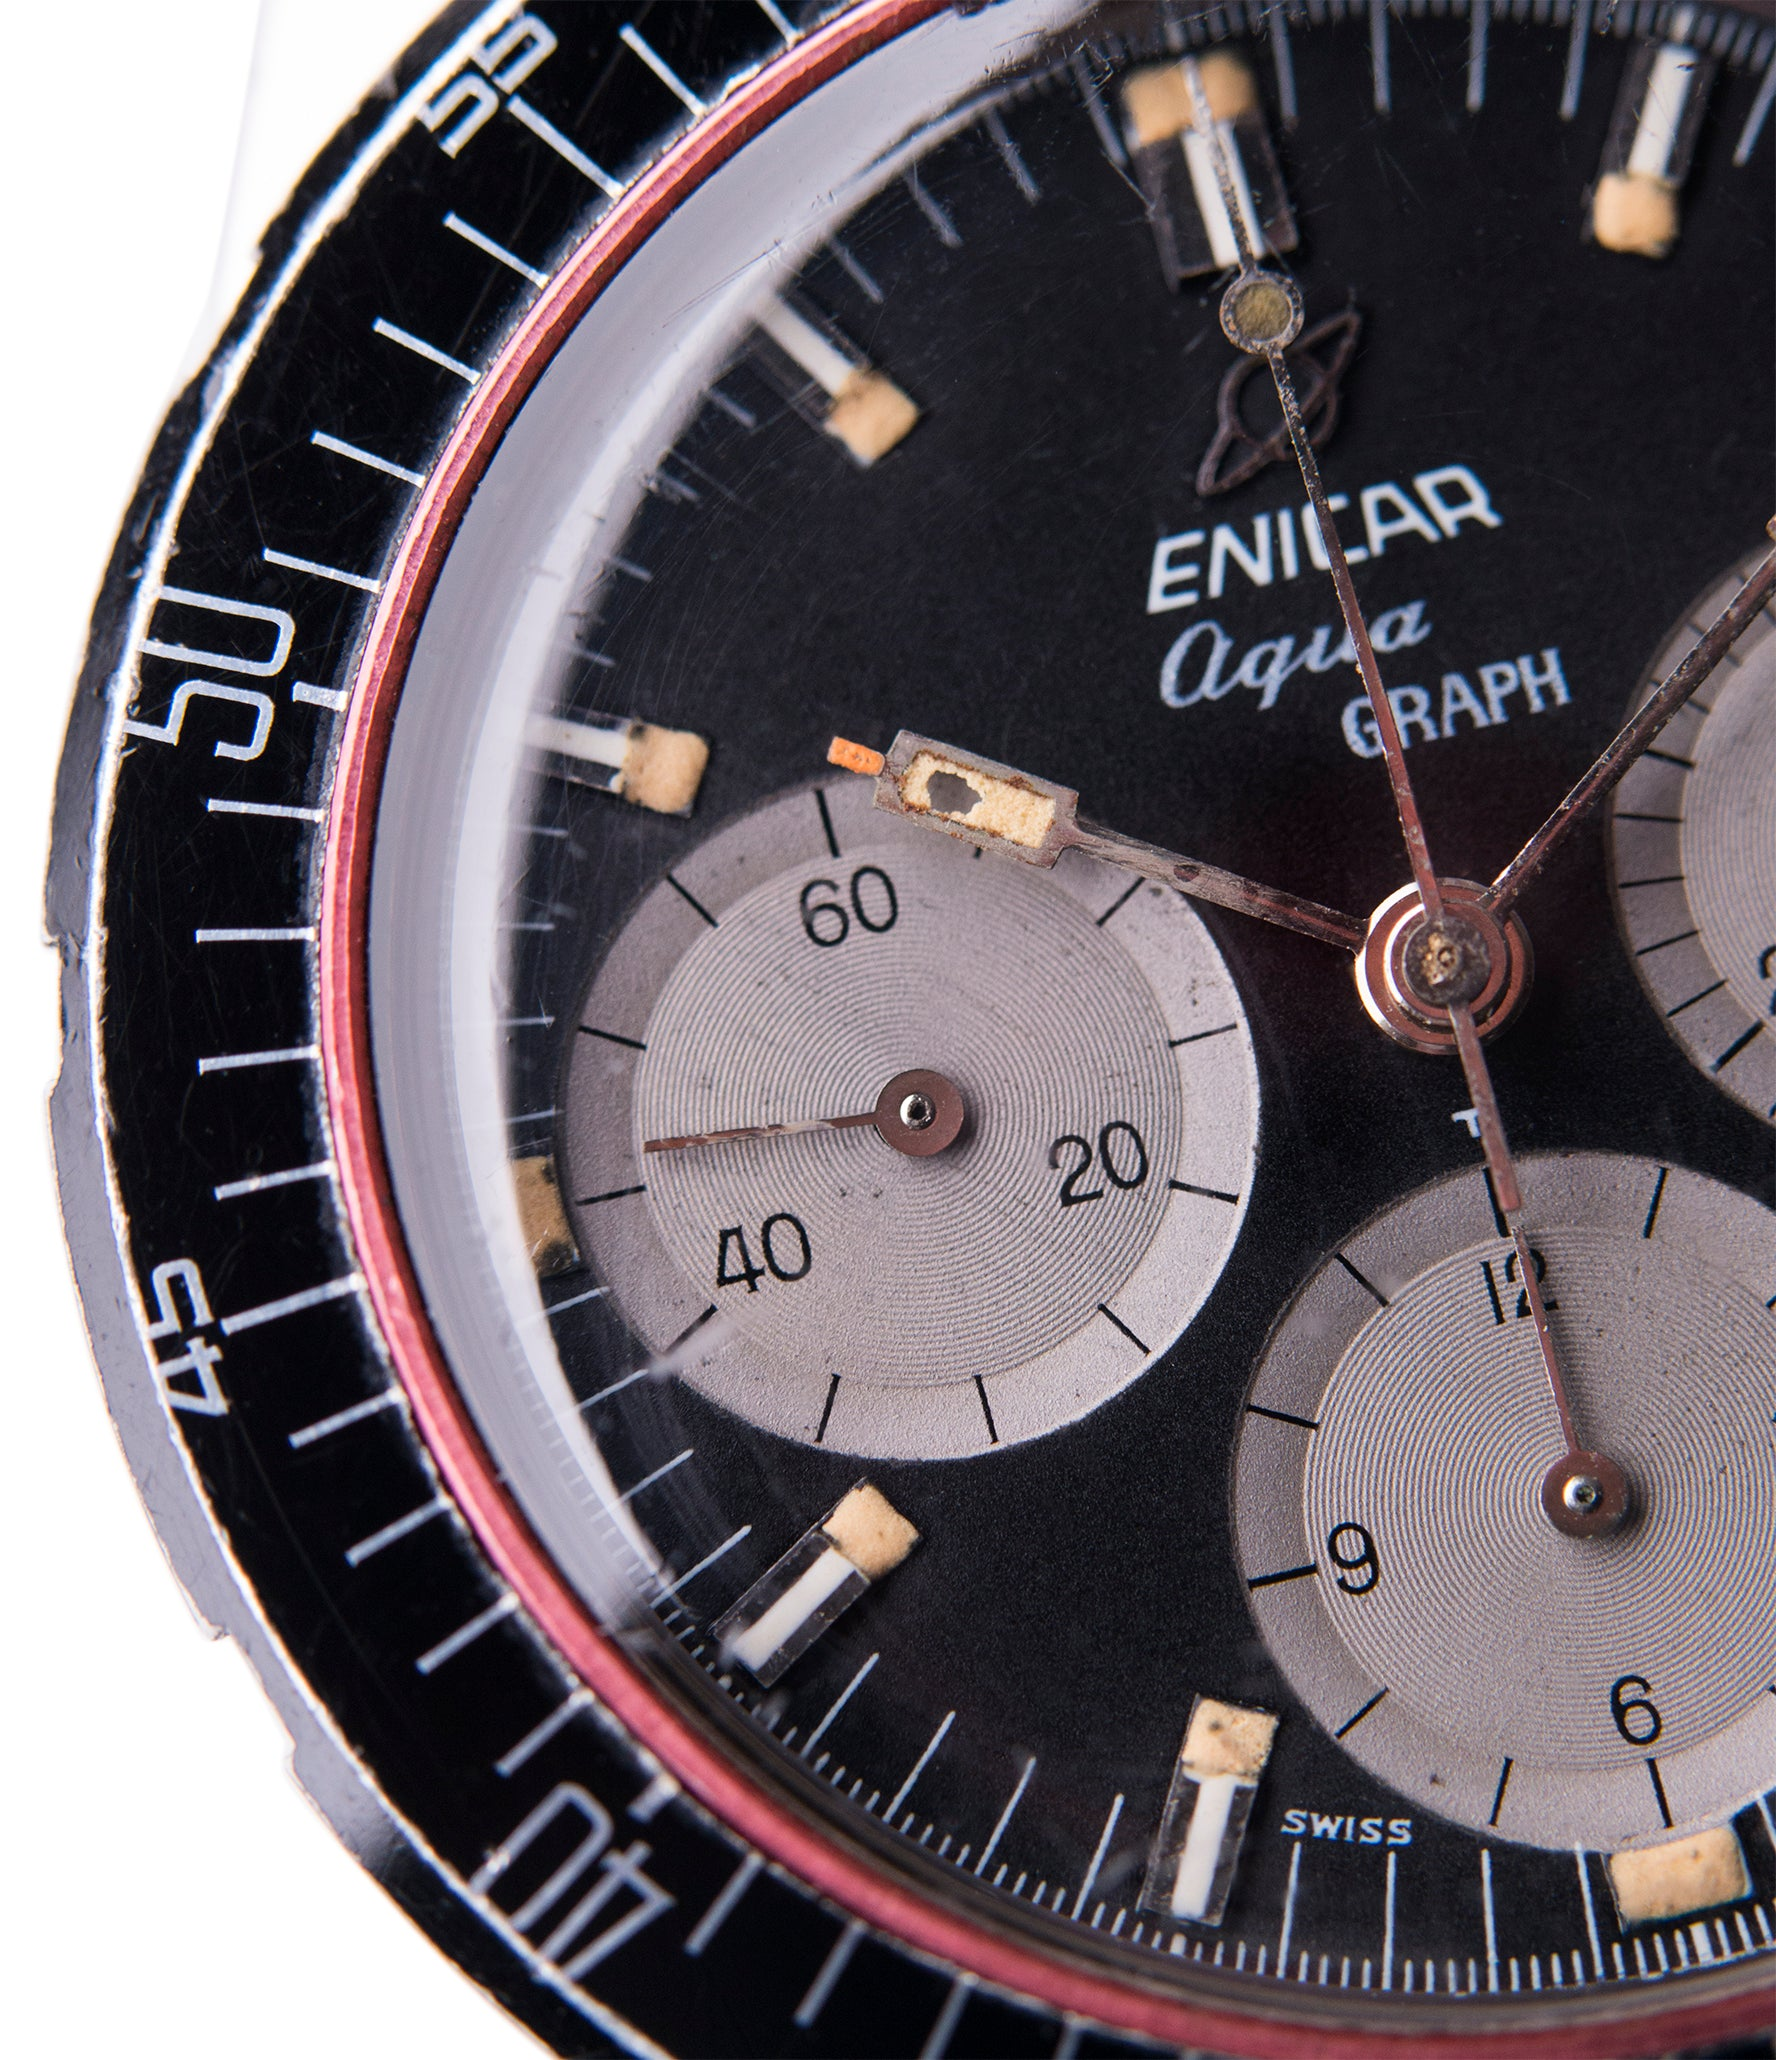 vintage chronograph Enicar Aqua Graph 072-02-02 steel watch for sale online at A Collected Man London UK specialist of rare watches